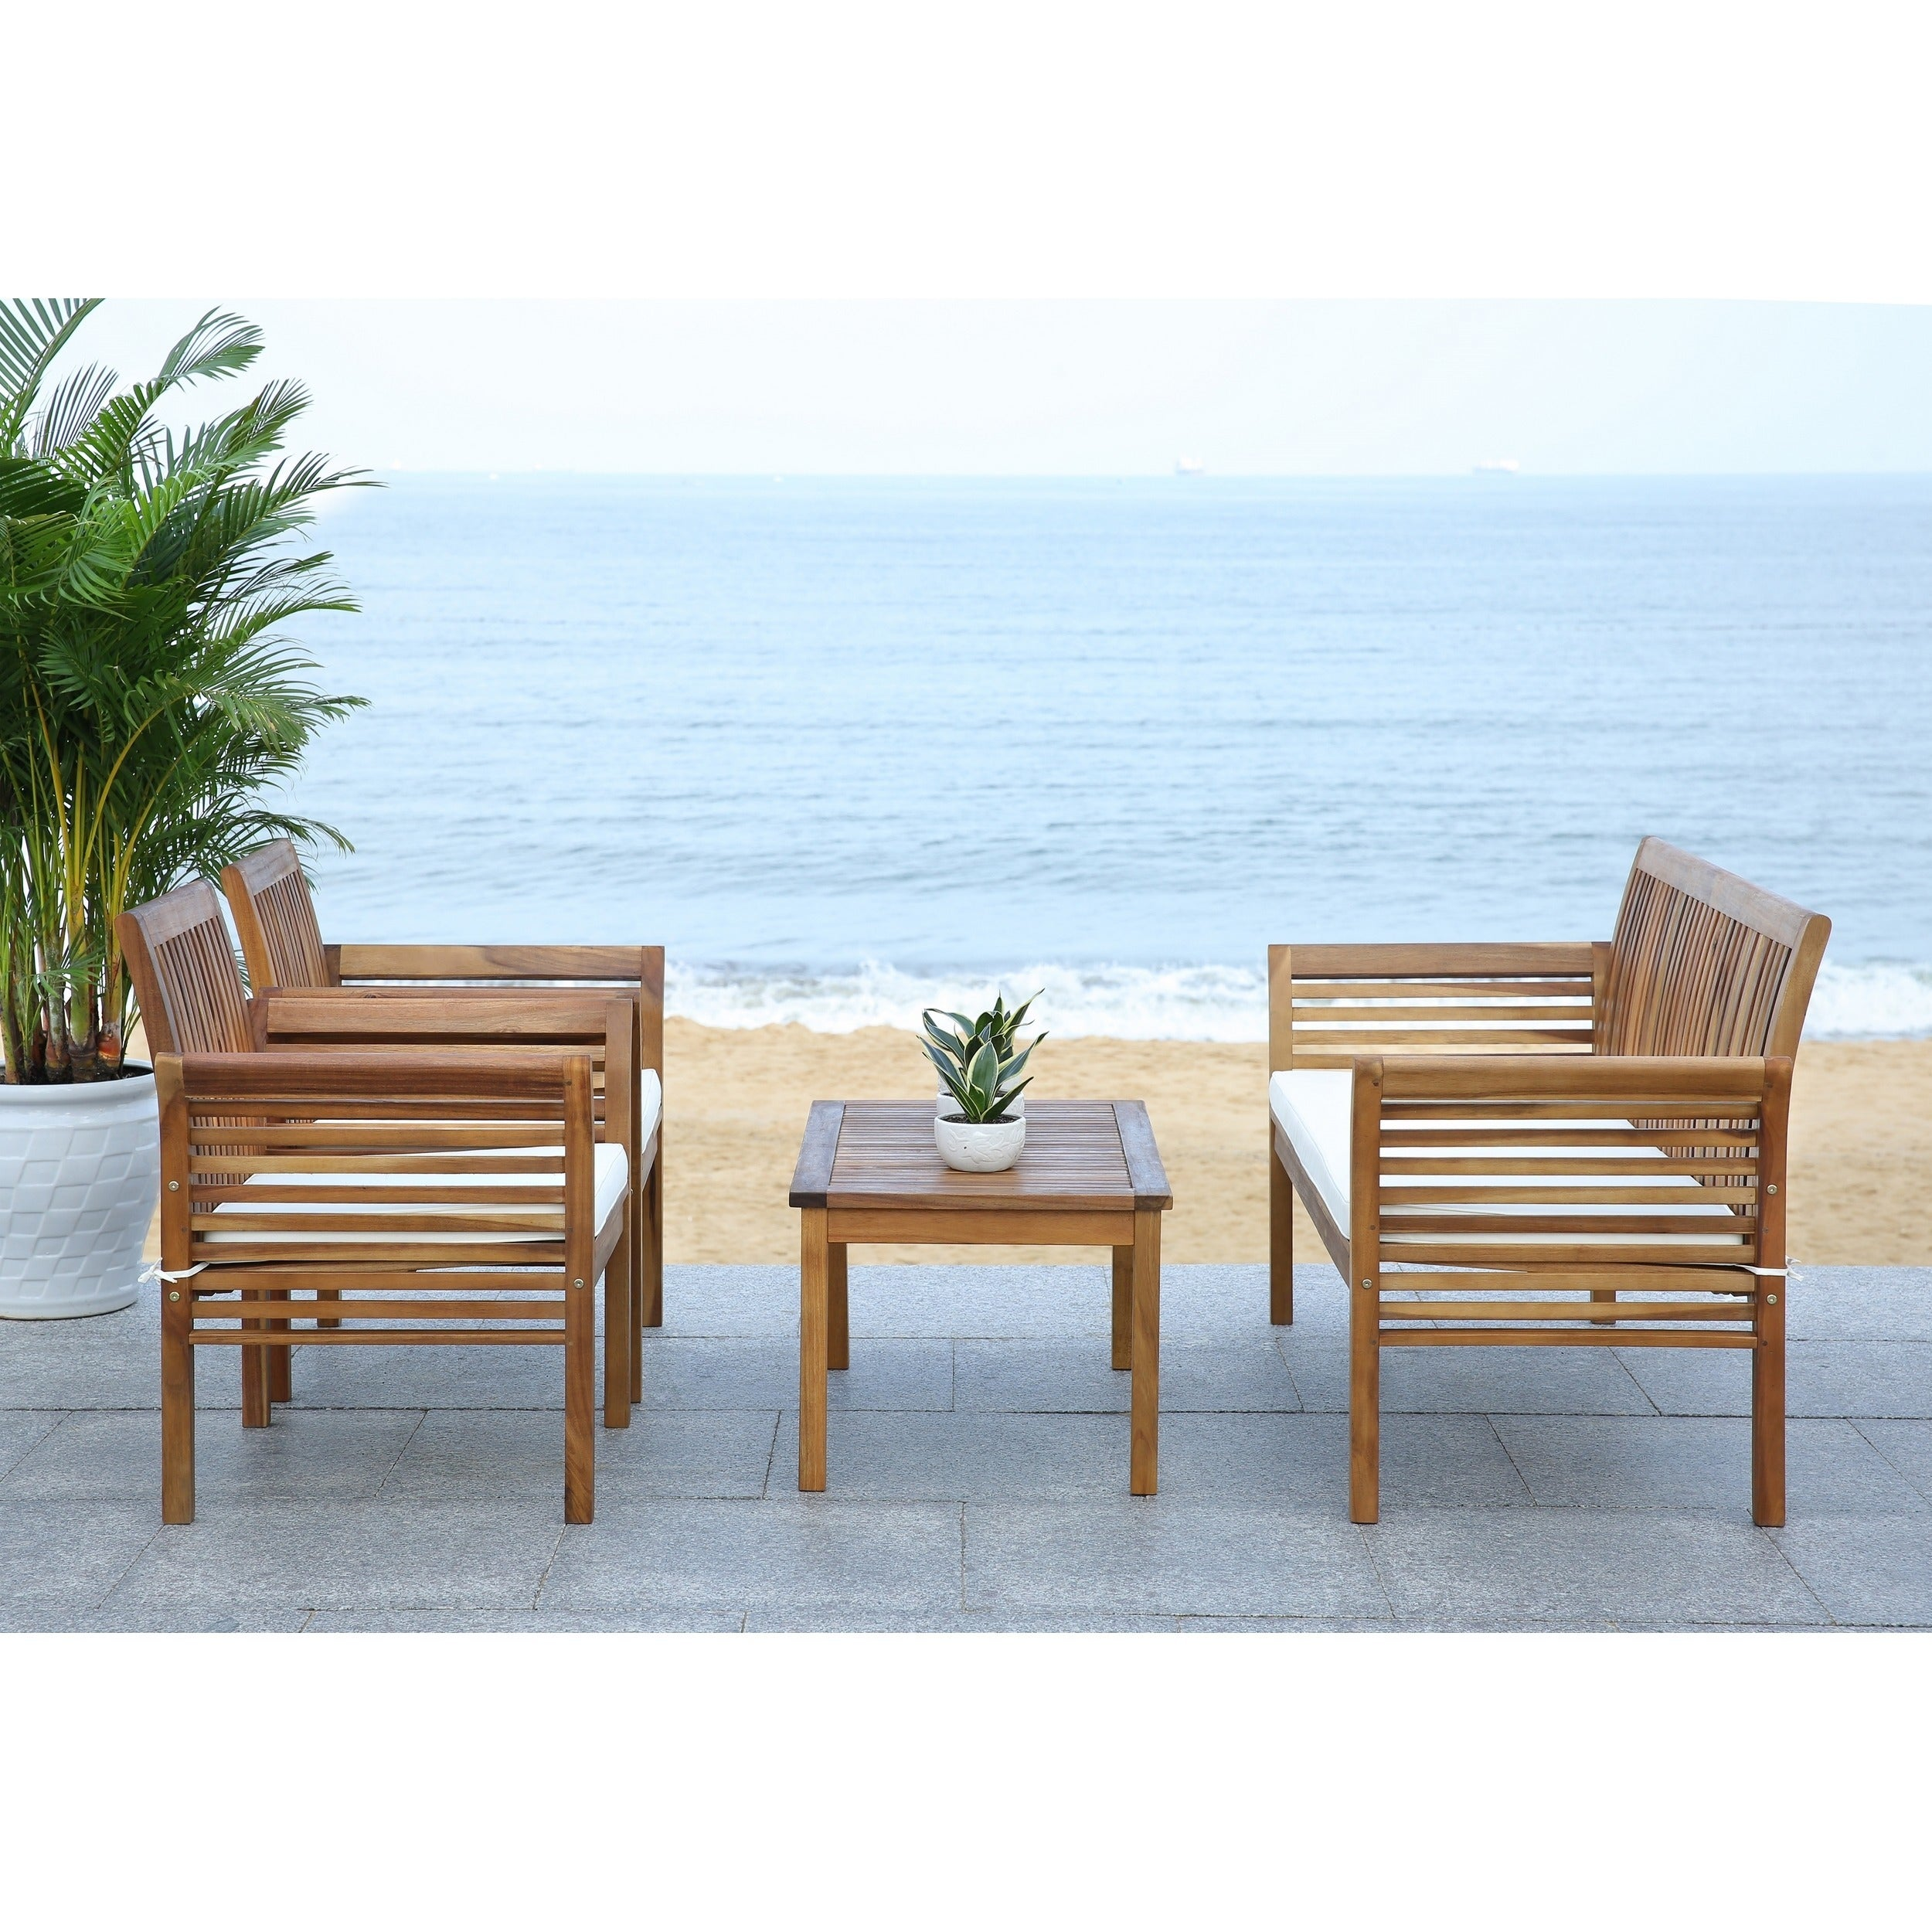 Shop Safavieh Carson Acacia Wood 4 Piece Outdoor Furniture Set